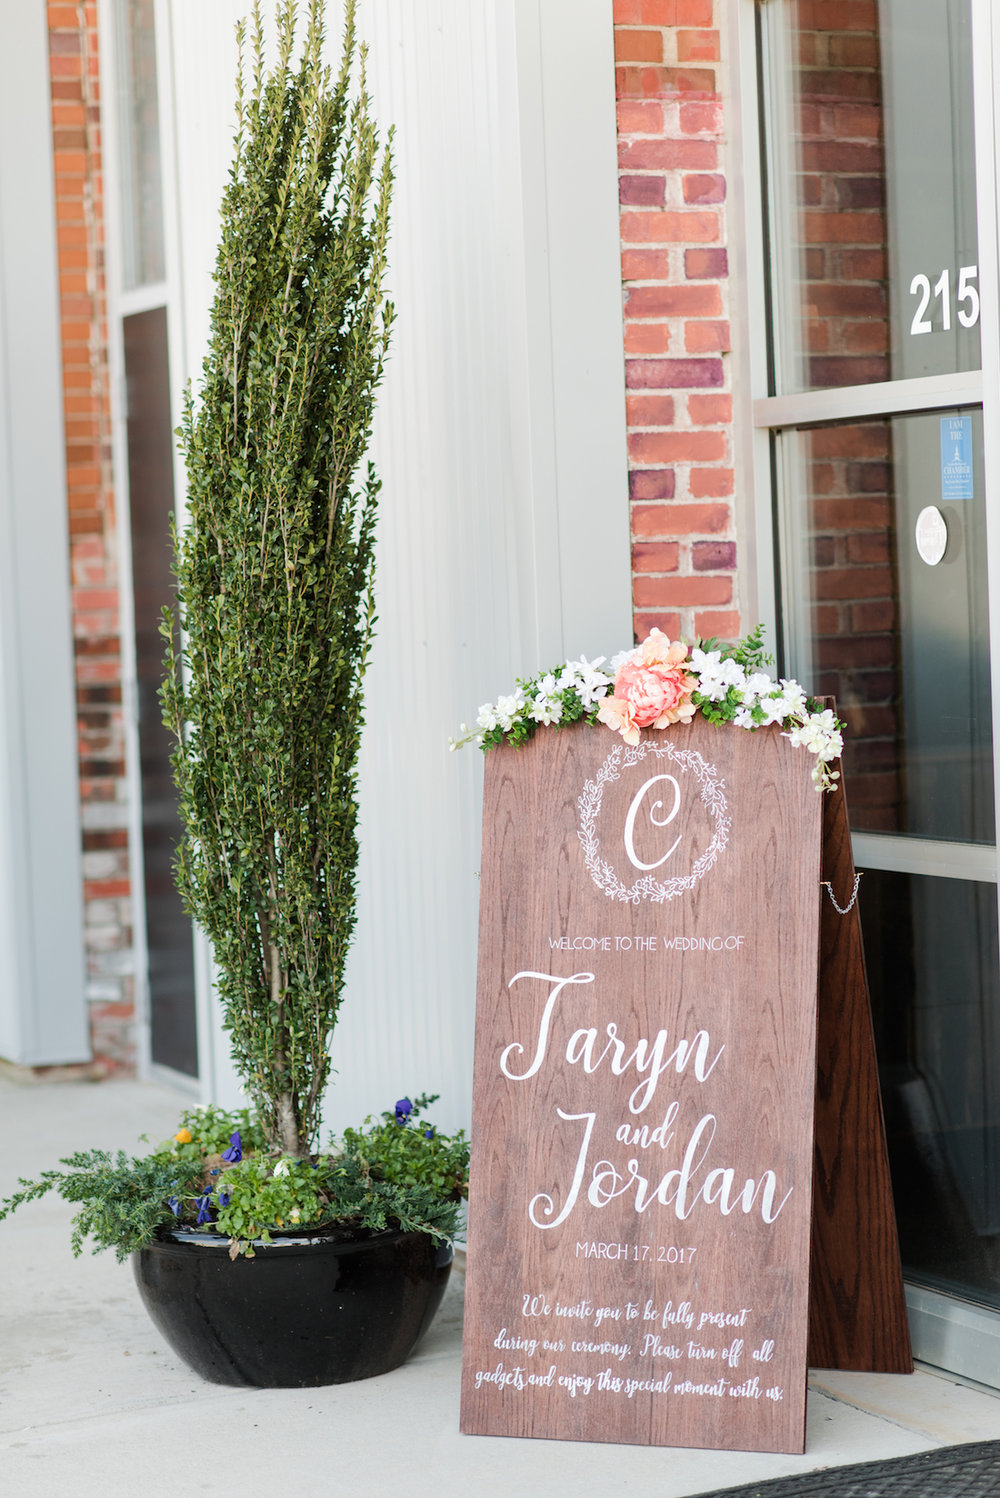 Taryn and Jordan's wedding reception sign